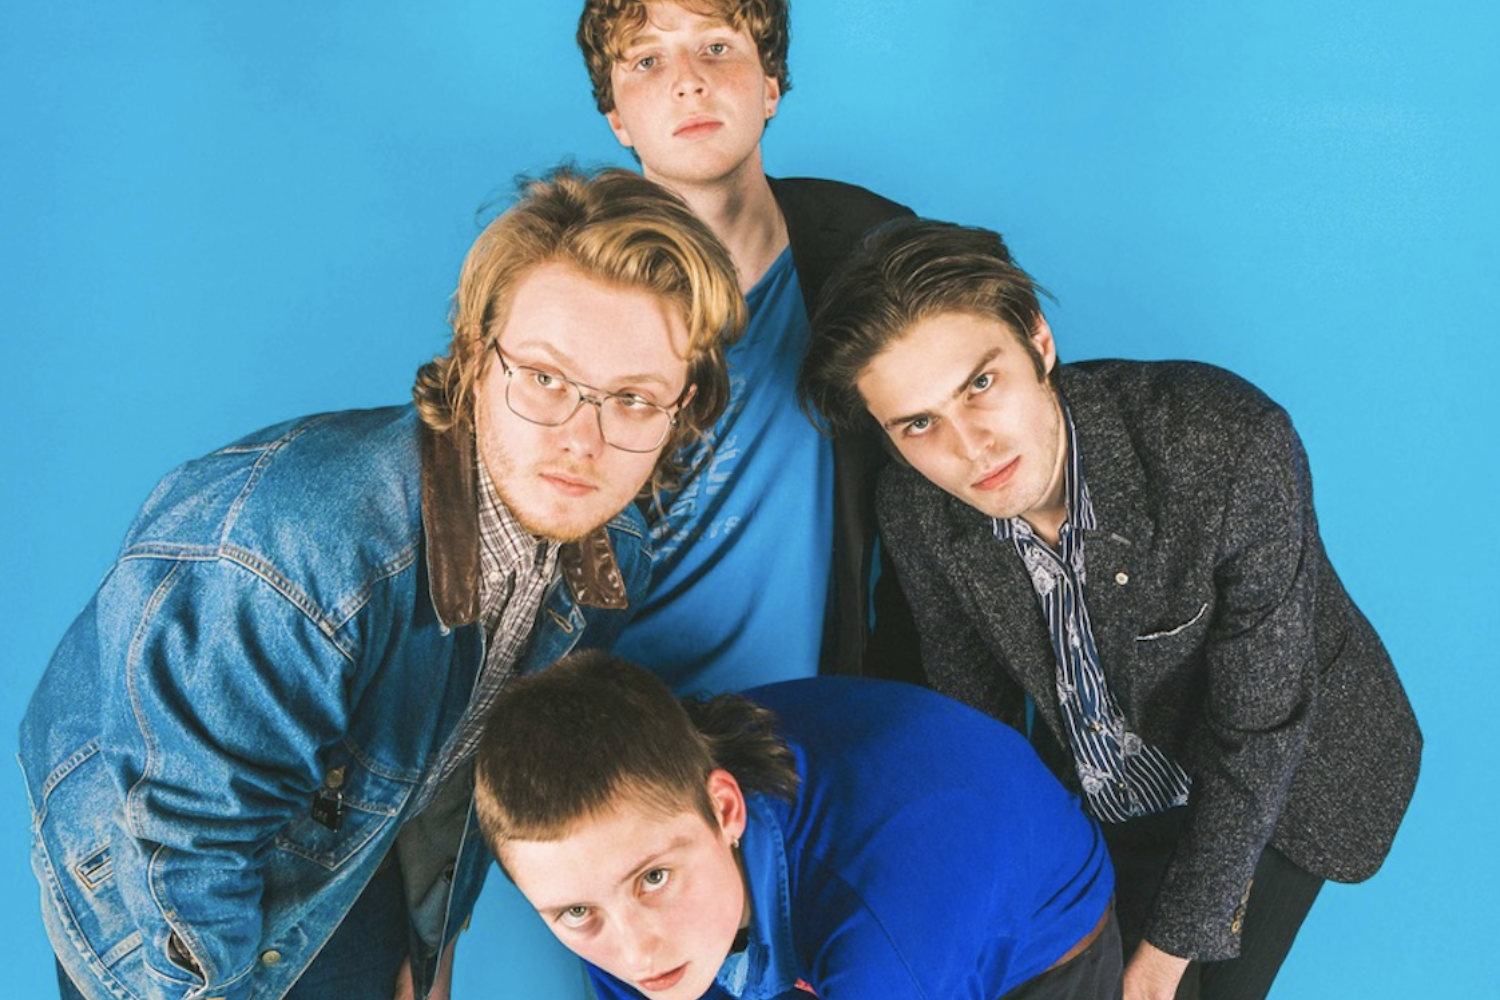 The Wha release new single 'Young Skins'